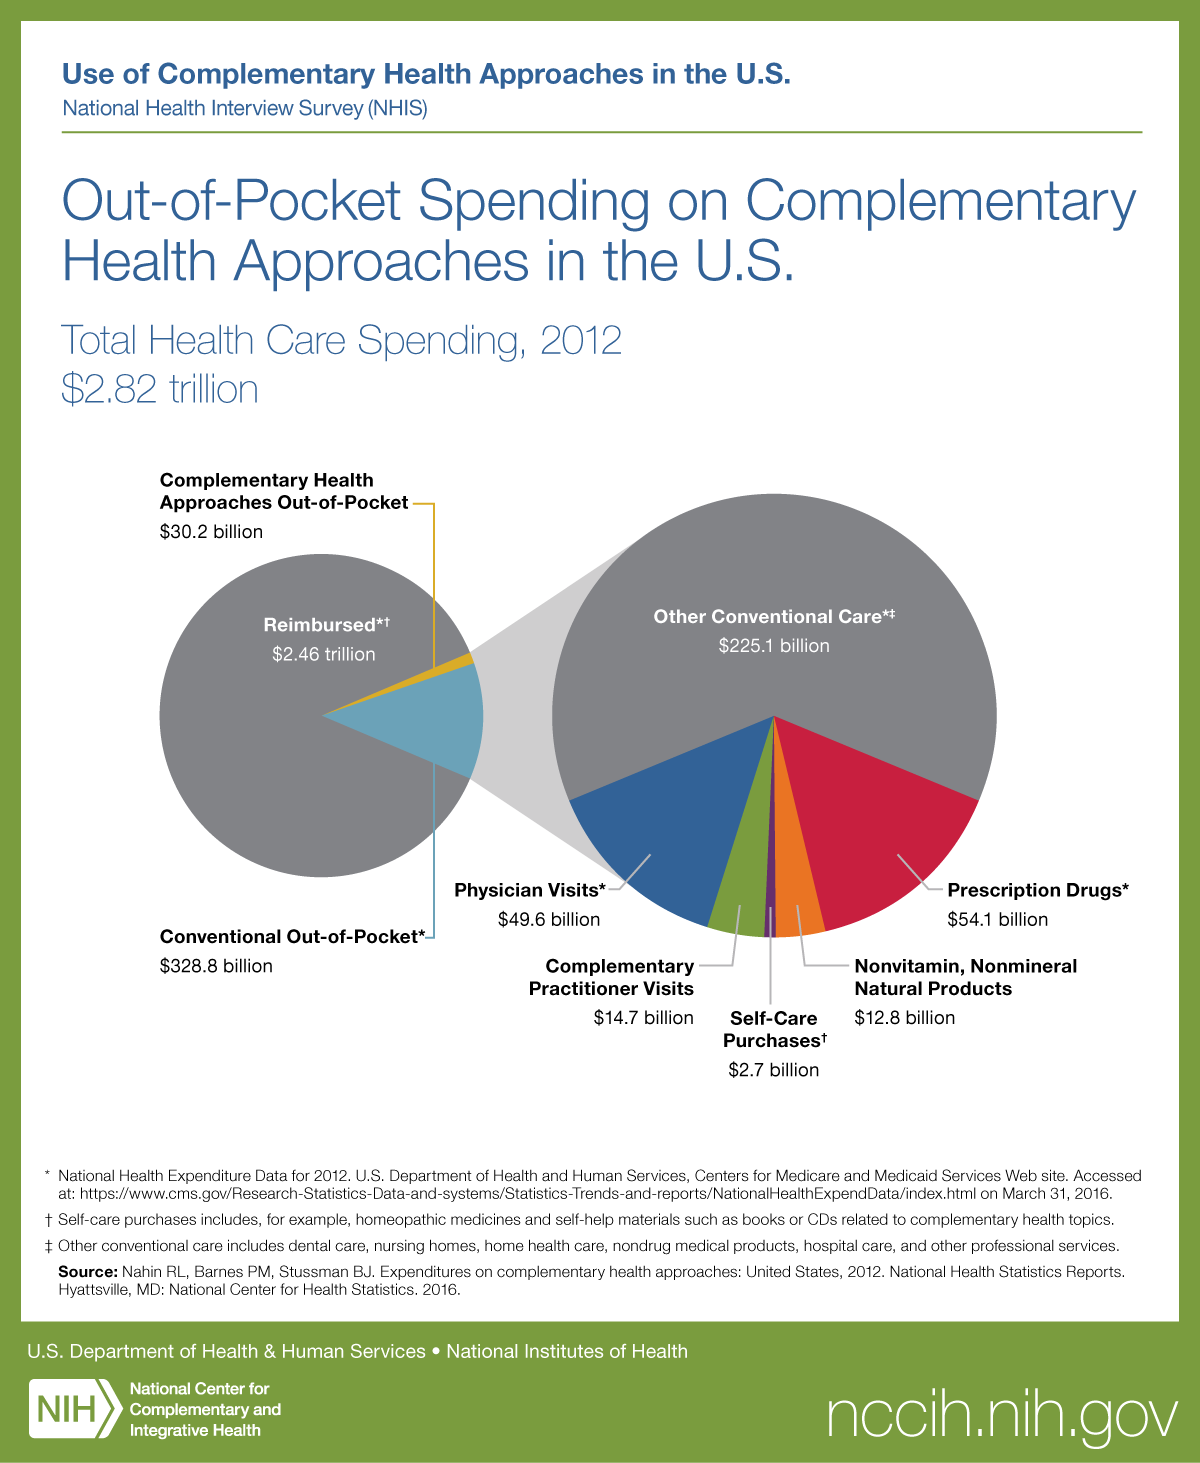 Out-of-Pocket Spending on Complementary Health Approaches in the U.S.